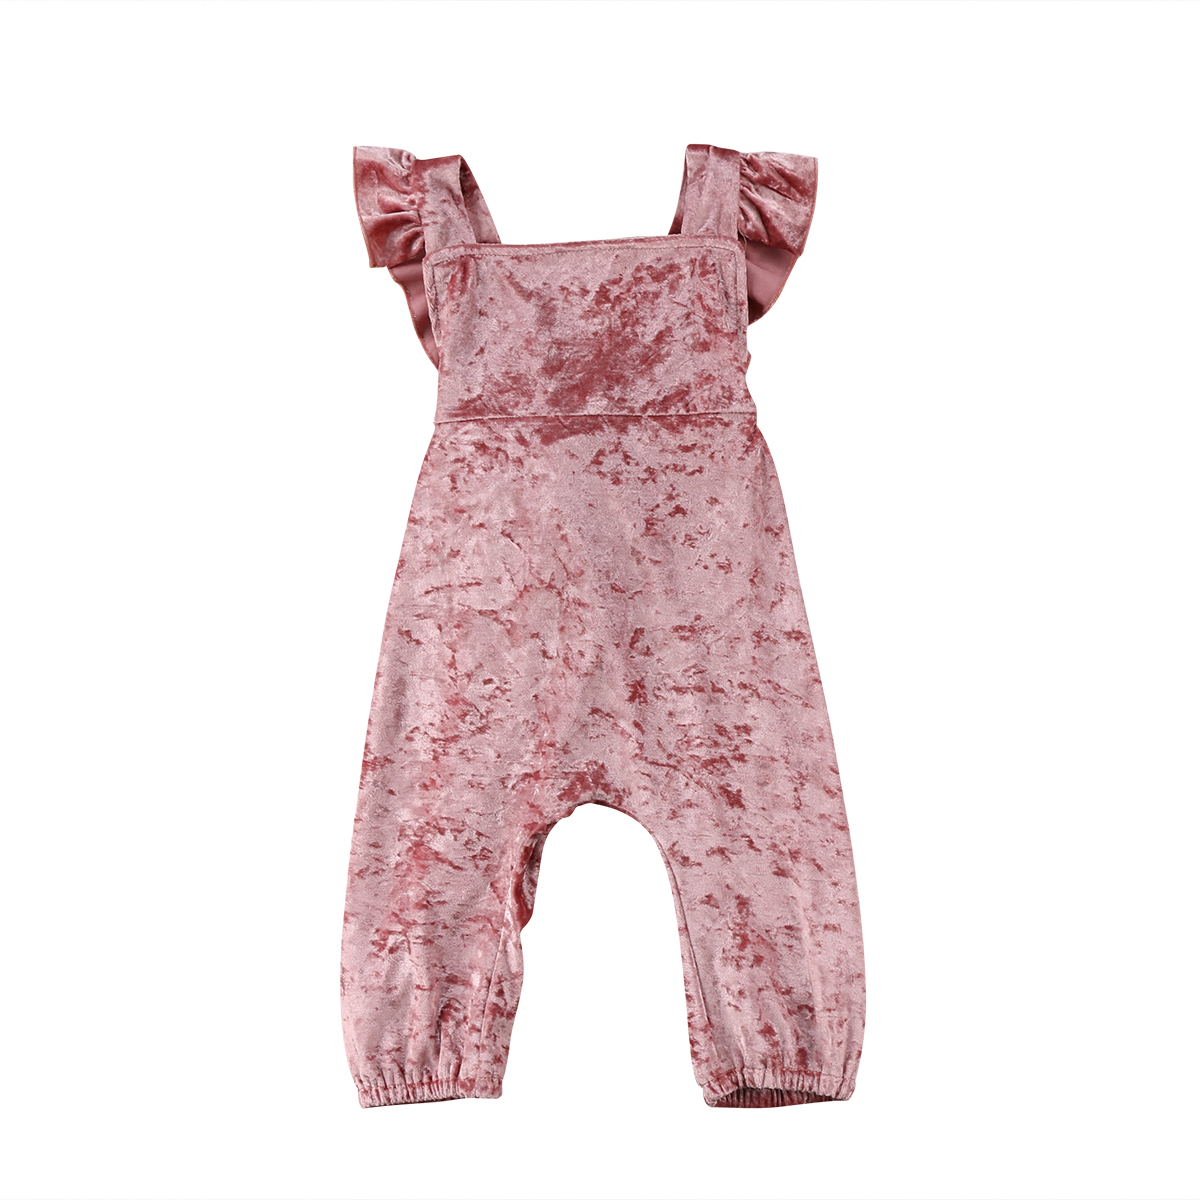 40d774b3ad3f Detail Feedback Questions about 2018 Fashion Newborn Baby Girls Velvet Pink  Romper Crosee Jumpsuit Clothes Summer Casual Outfits on Aliexpress.com